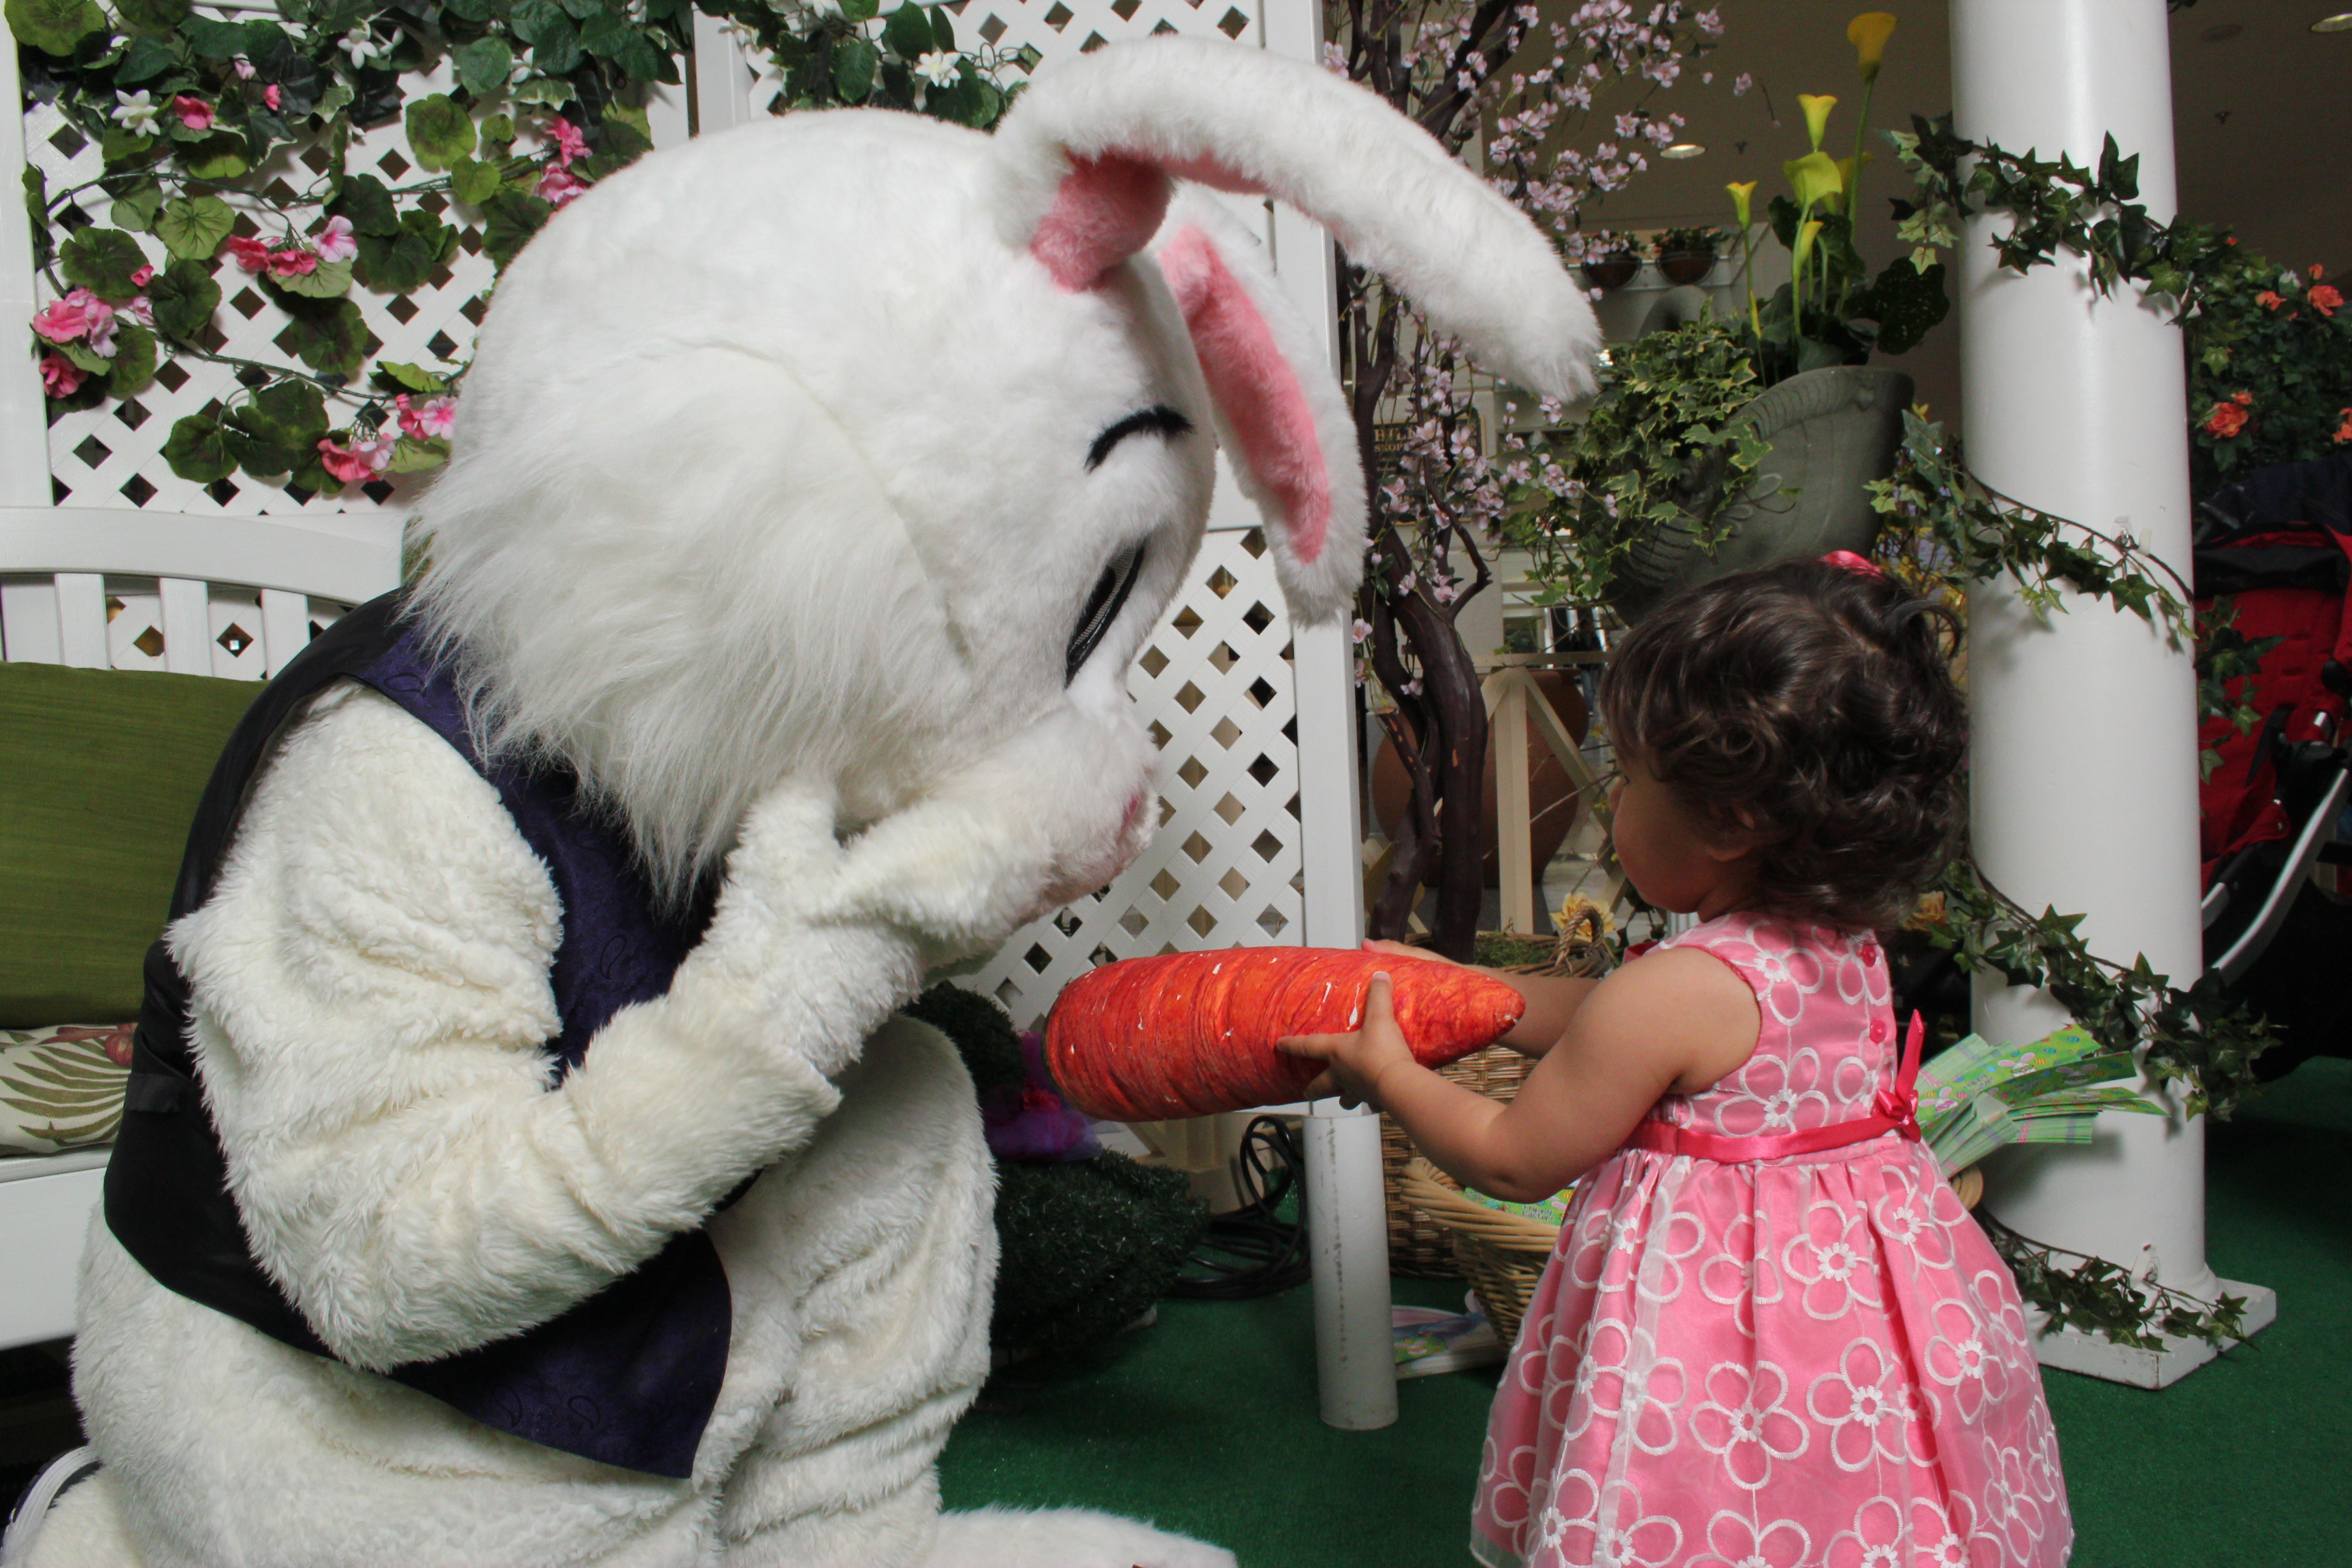 Grab your Easter bonnet or just bring a smile to visit with the Easter Bunny. He'll be nestled in his cozy garden corner and available for photo h-ops with the kids. With a variety of digital photo packages to choose from, parents can capture the moment forever. For more information, and a full schedule, visit hillsdale.com or call the Concierge at 650-571-1029.